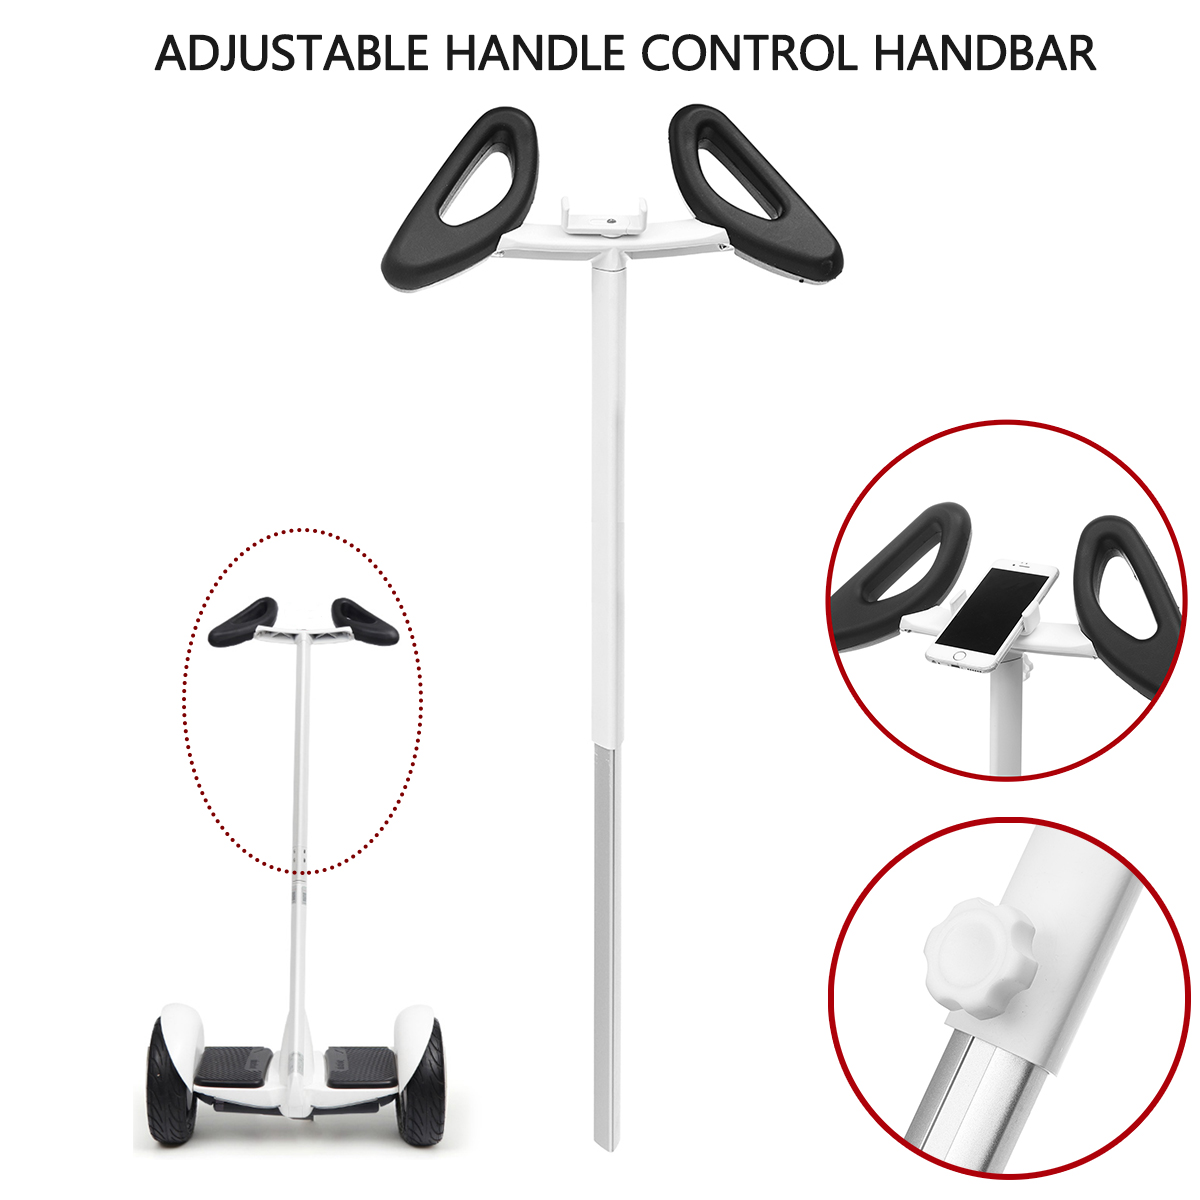 Adjustable Handle Control Handbar For Xiaomi Ninebot Mini Plus Balance Scooter Xiaomi Ninebot MiniPLUS Scooter Accessories